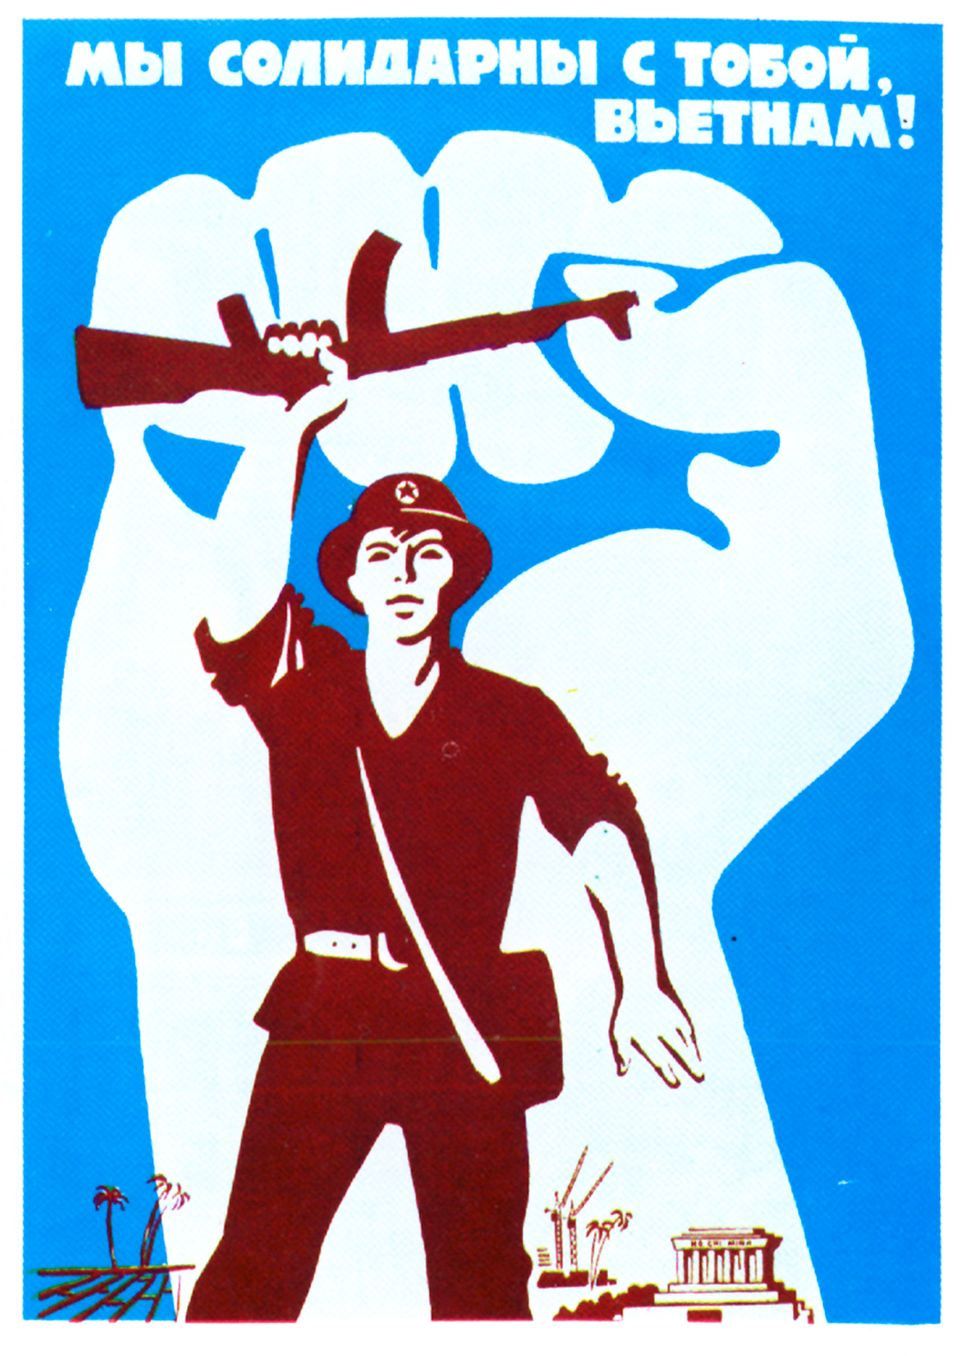 Soviet Propaganda poster from the 70's. We are in solidarity with you, Vietnam!""